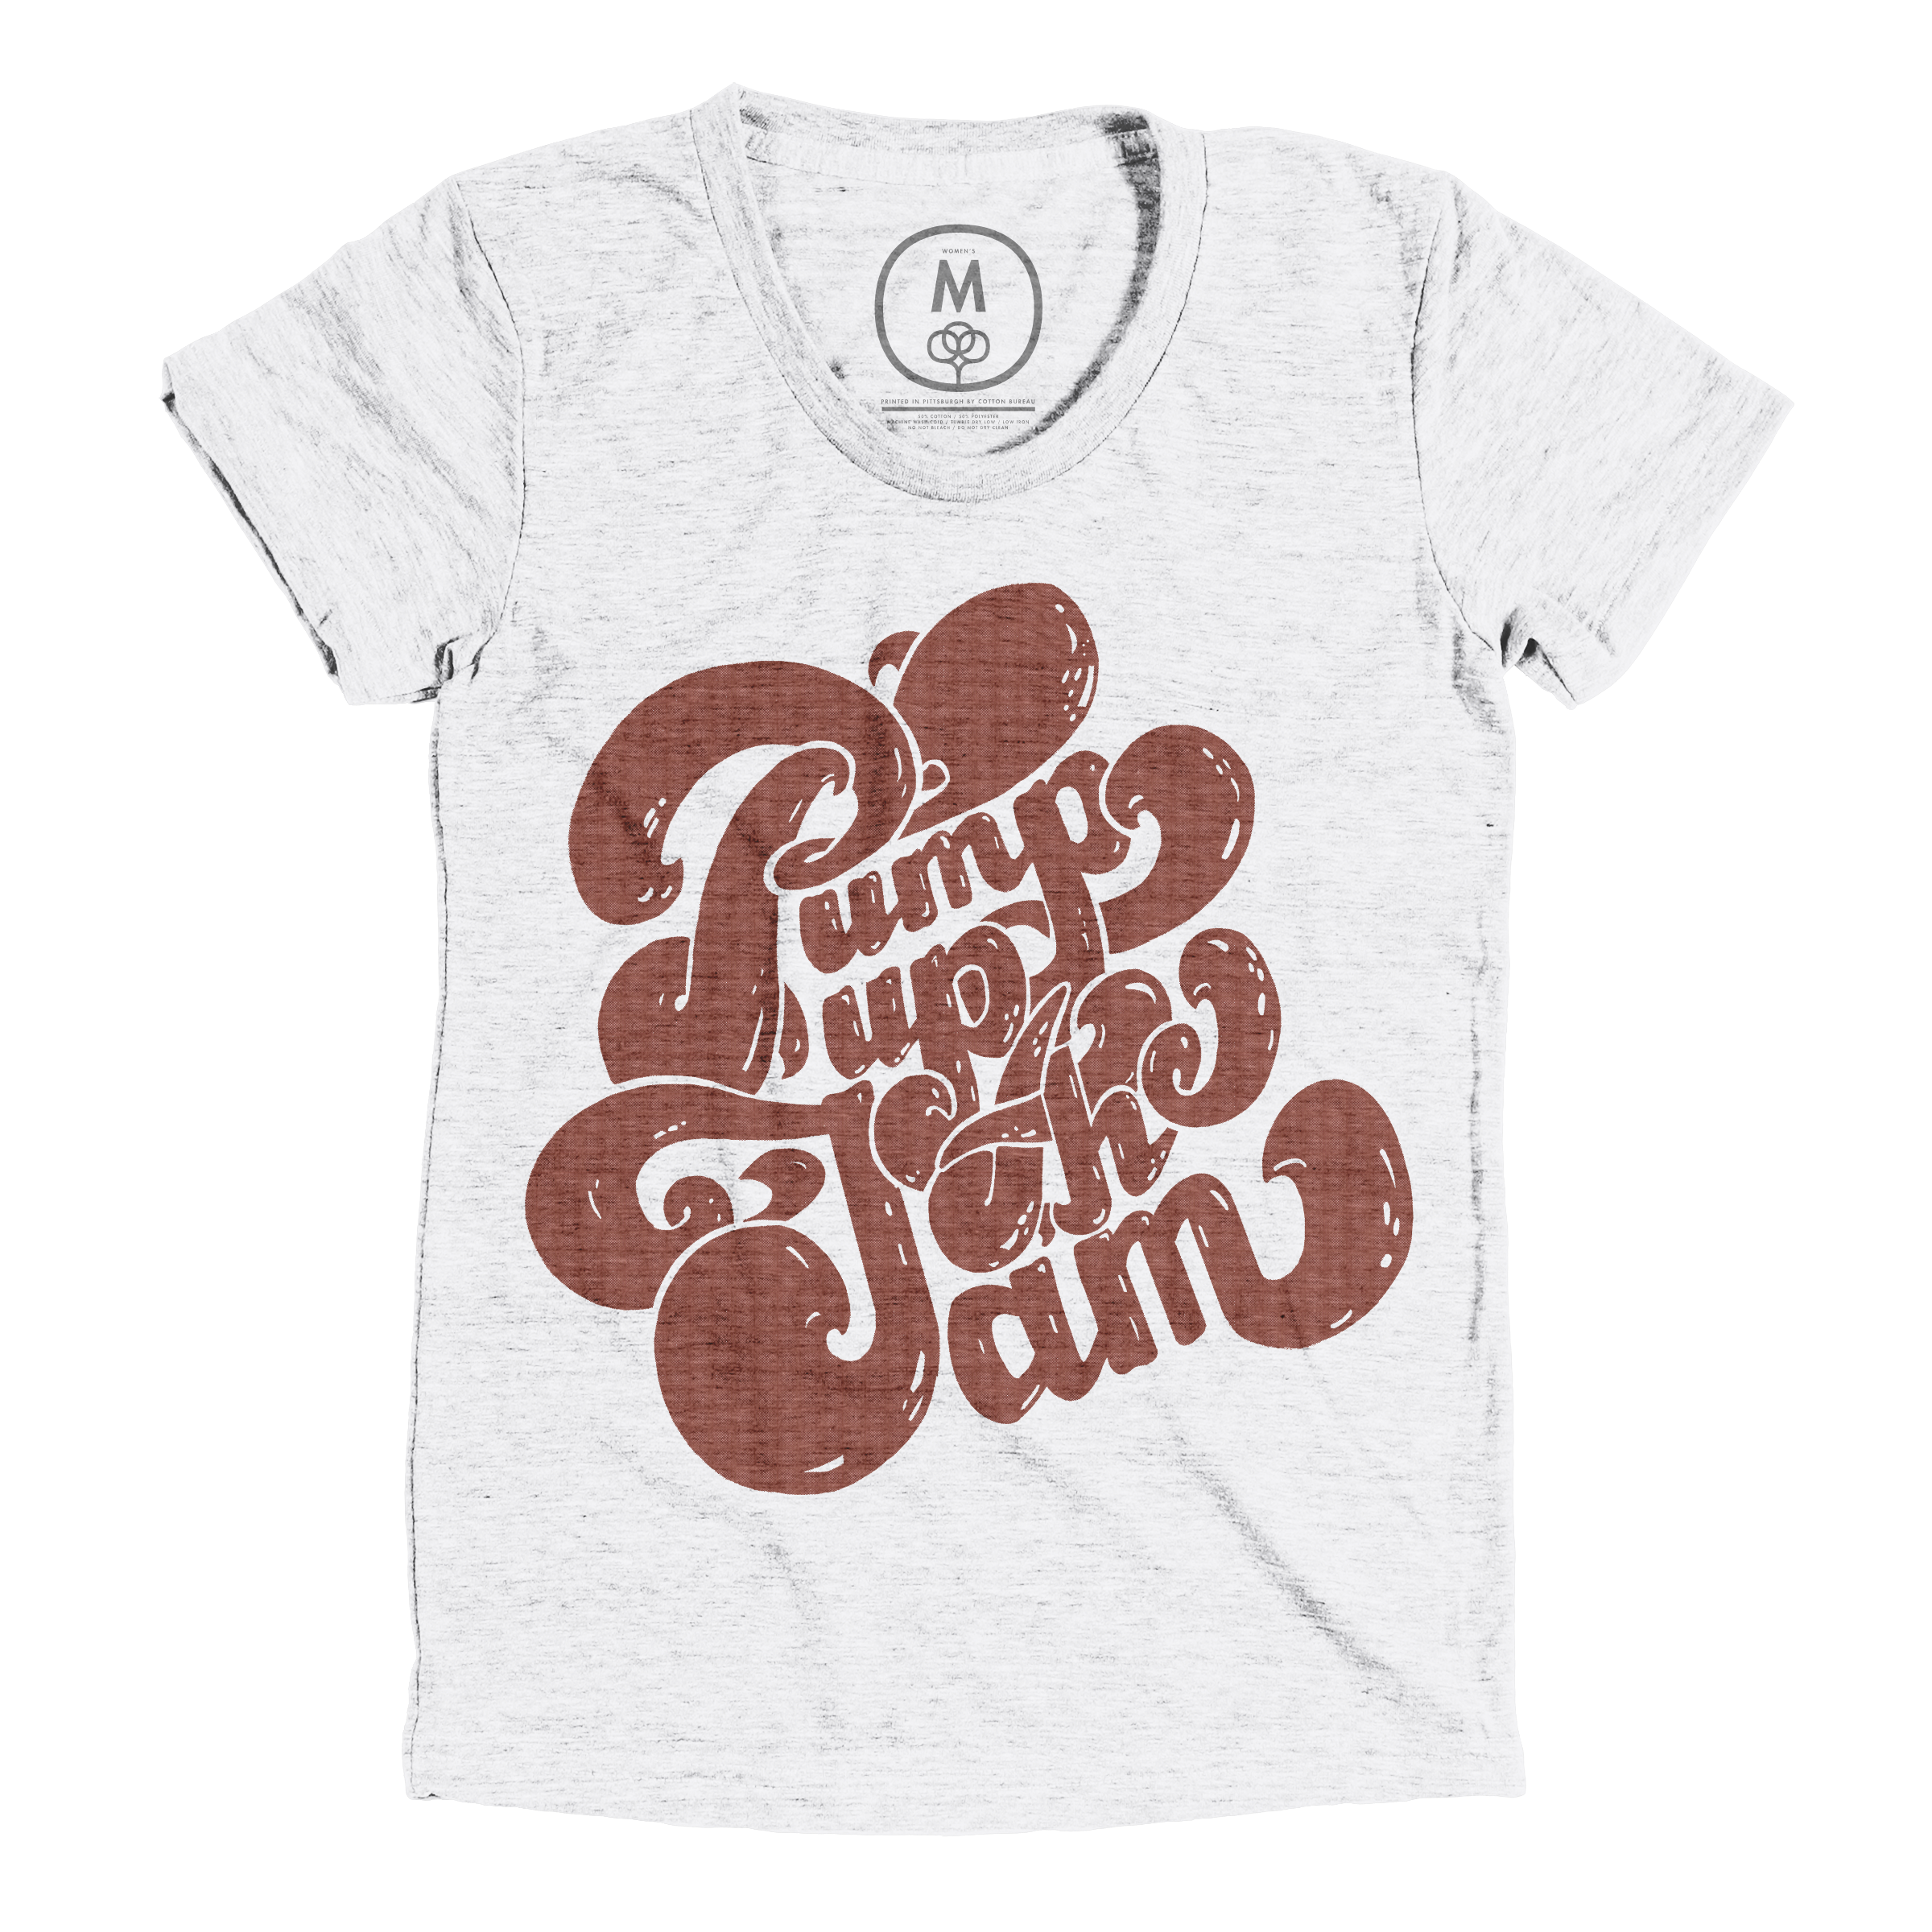 Pump Up the Jam Heather White (Women's)